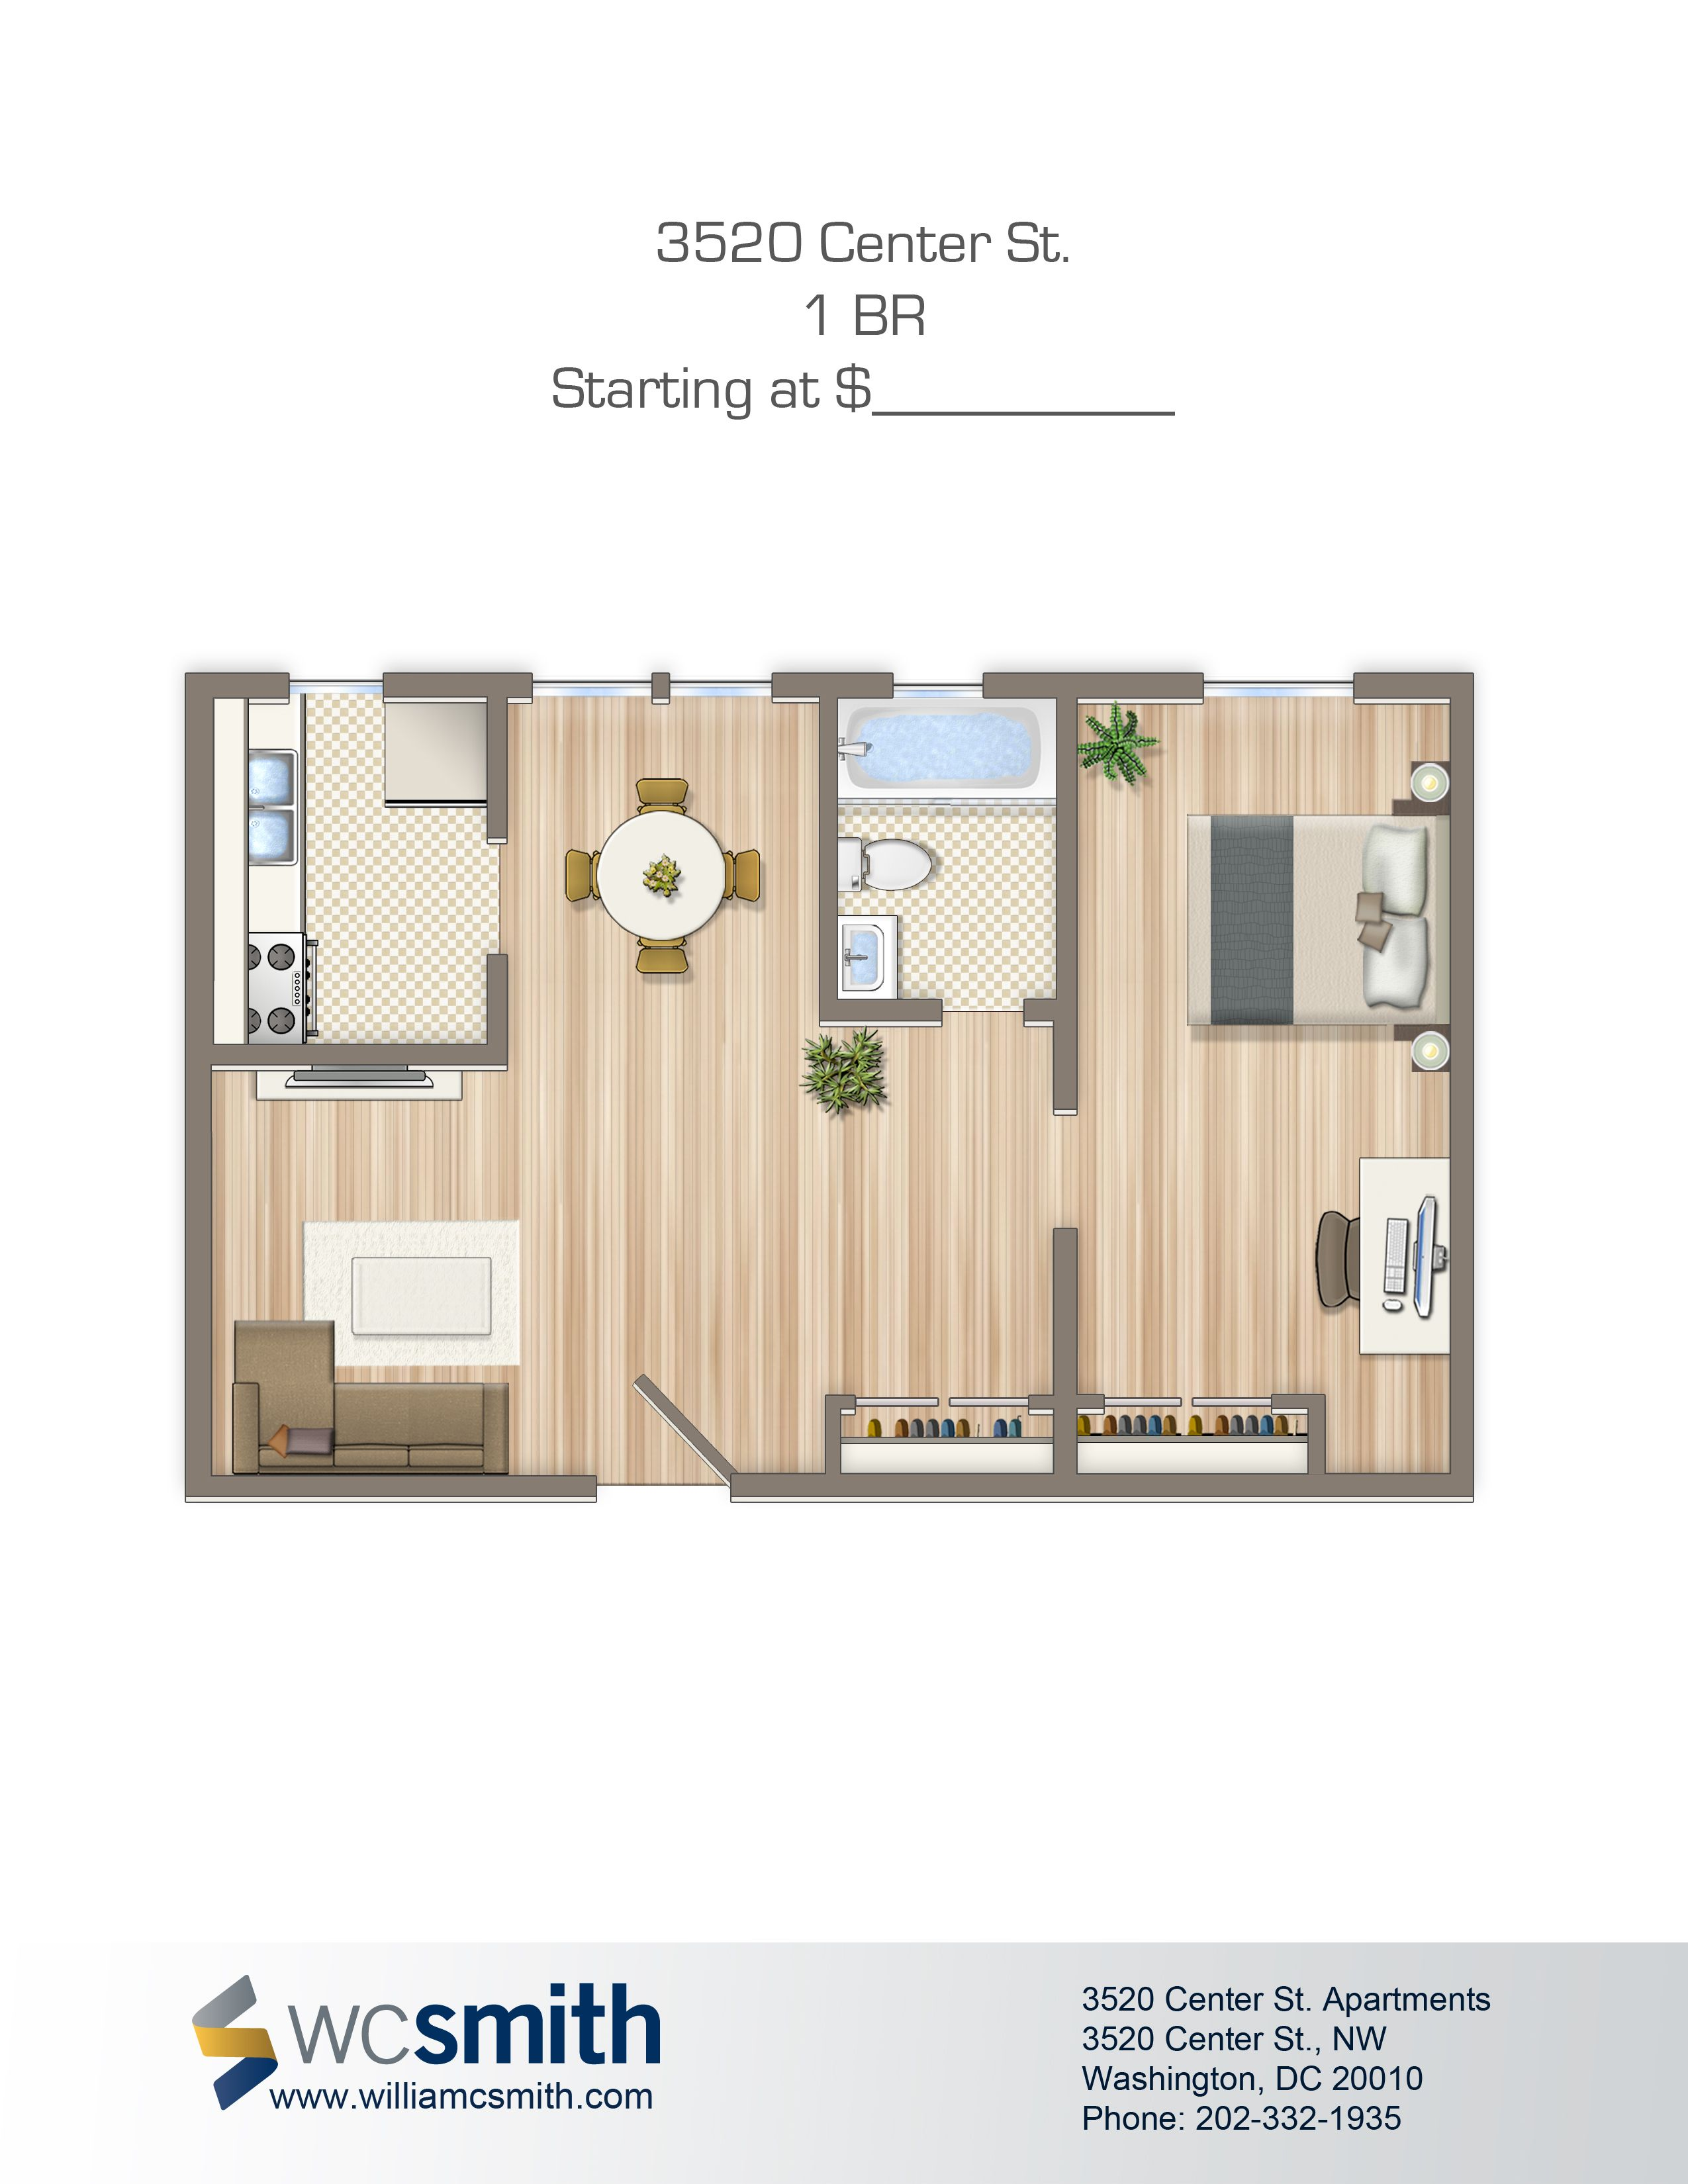 One Bedroom Floor Plan Alpha House Apartments in